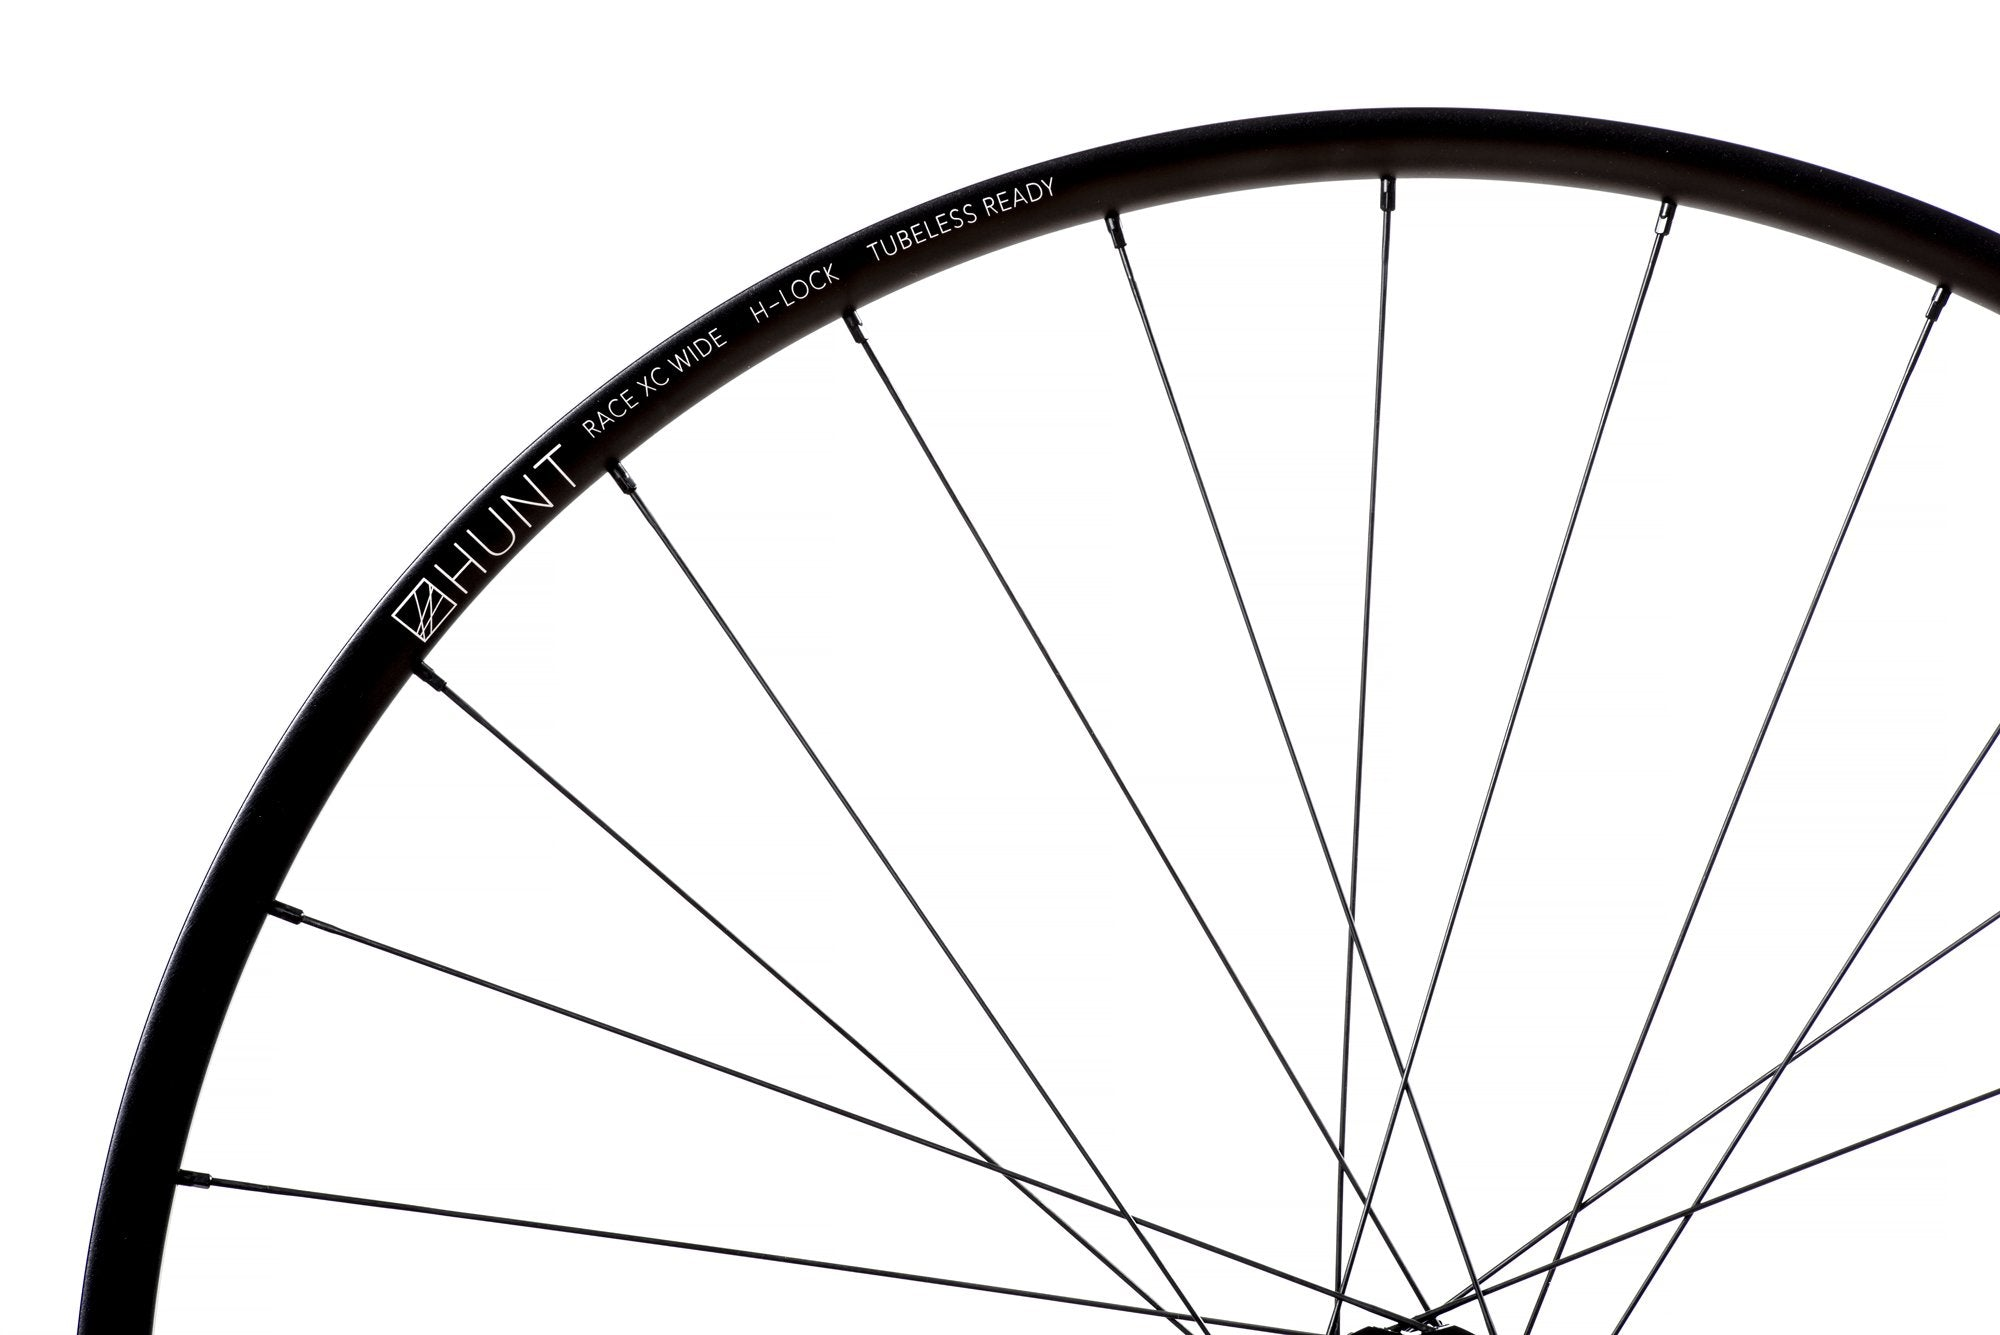 <h1>Spokes</h1><i>We have chosen top of the line, straight pull Pillar Spokes for excellent torsional strength and power transfer. Not only are these spokes extremely lightweight, they are also able to provide a greater degree of elasticity when put under increased stress. The Pillar Spoke Reinforcement (PSR) puts more material at the spoke head to prevent failure in this stress area.</i>